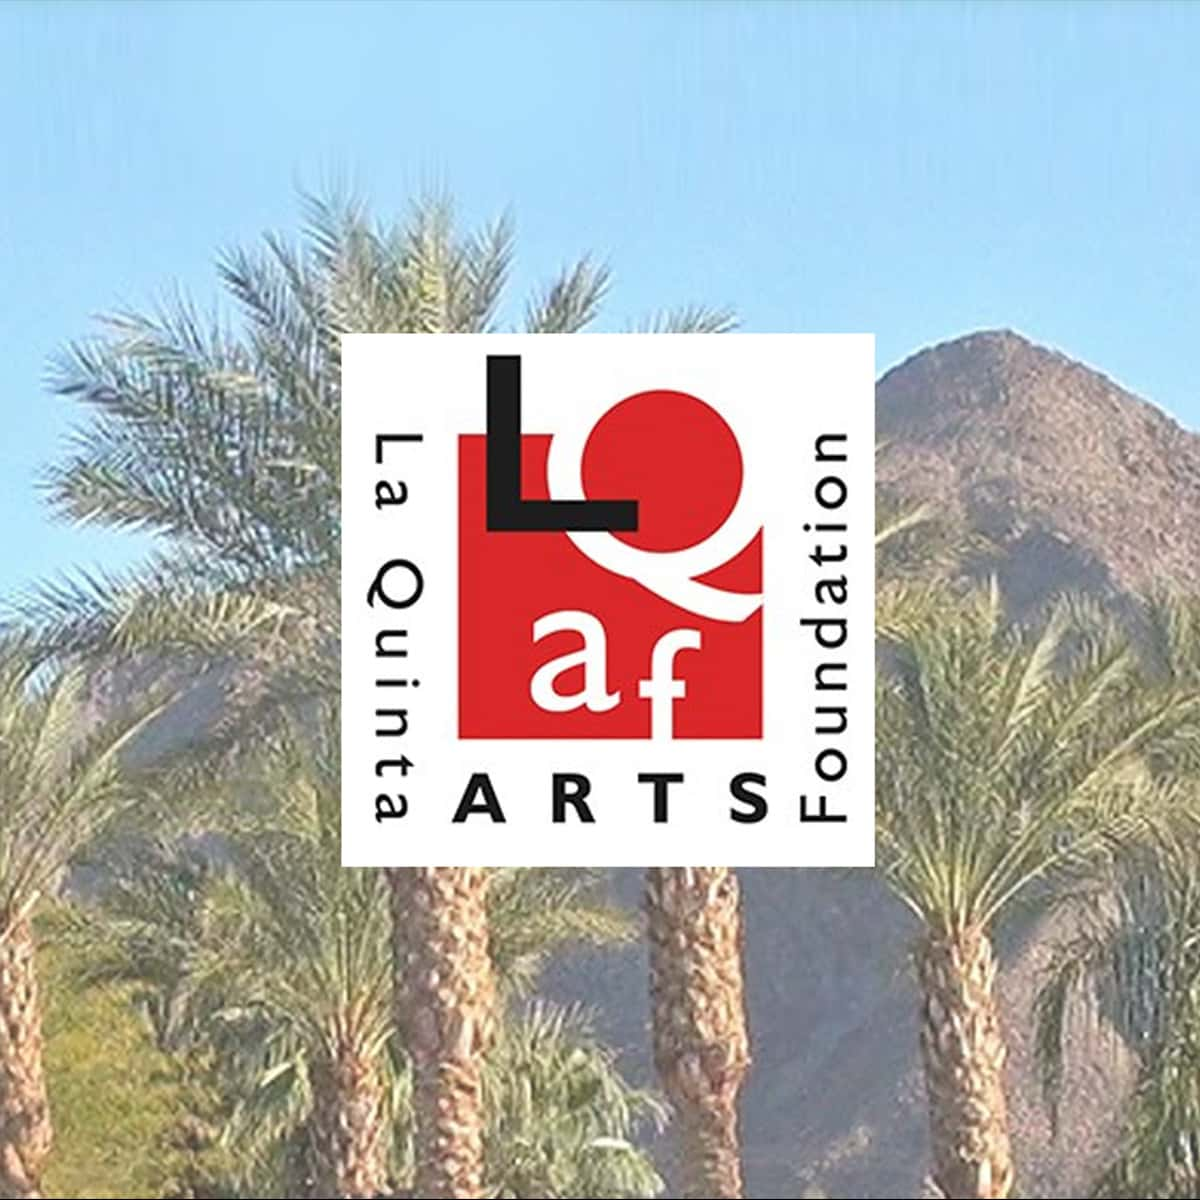 La Quinta Arts Foundation